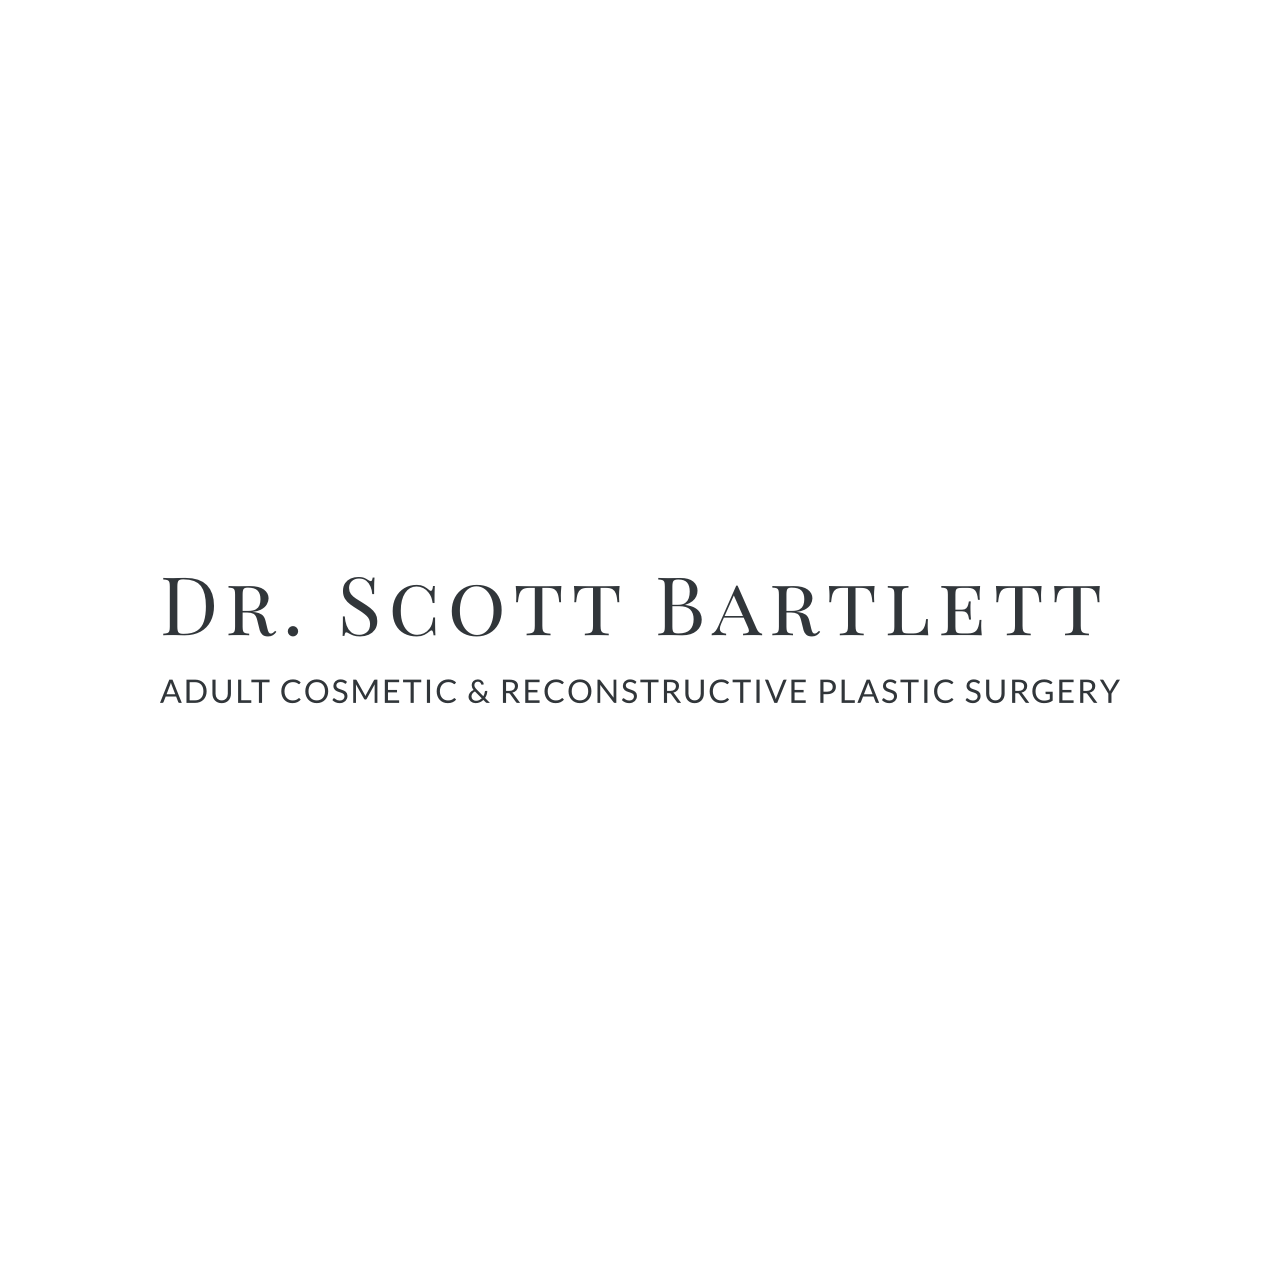 Dr Scott Bartlett Adult Cosmetic and Reconstructive Plastic Surgery